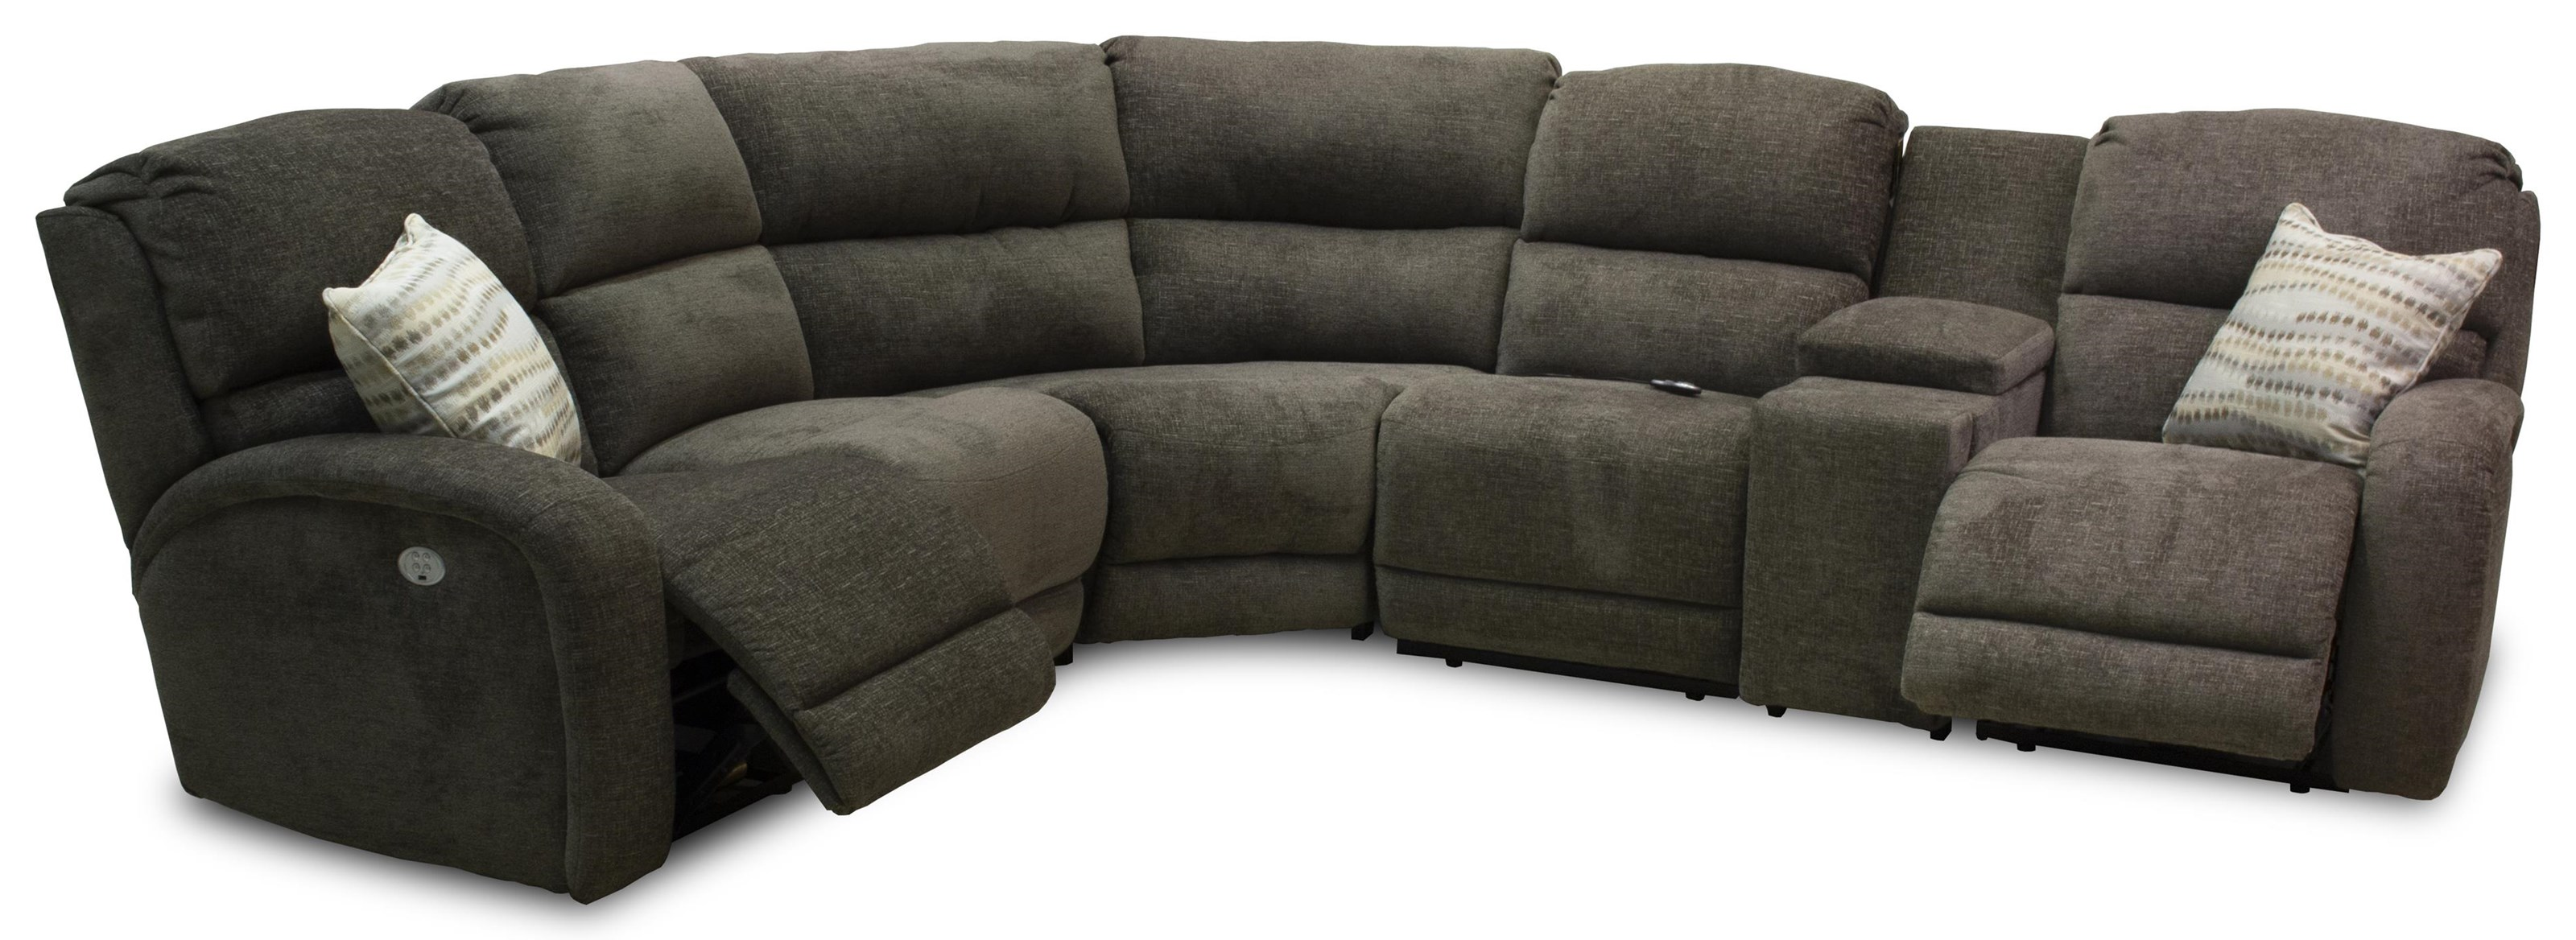 Fandango 6-Piece Power Reclining Sectional by Southern Motion at Ruby Gordon Home